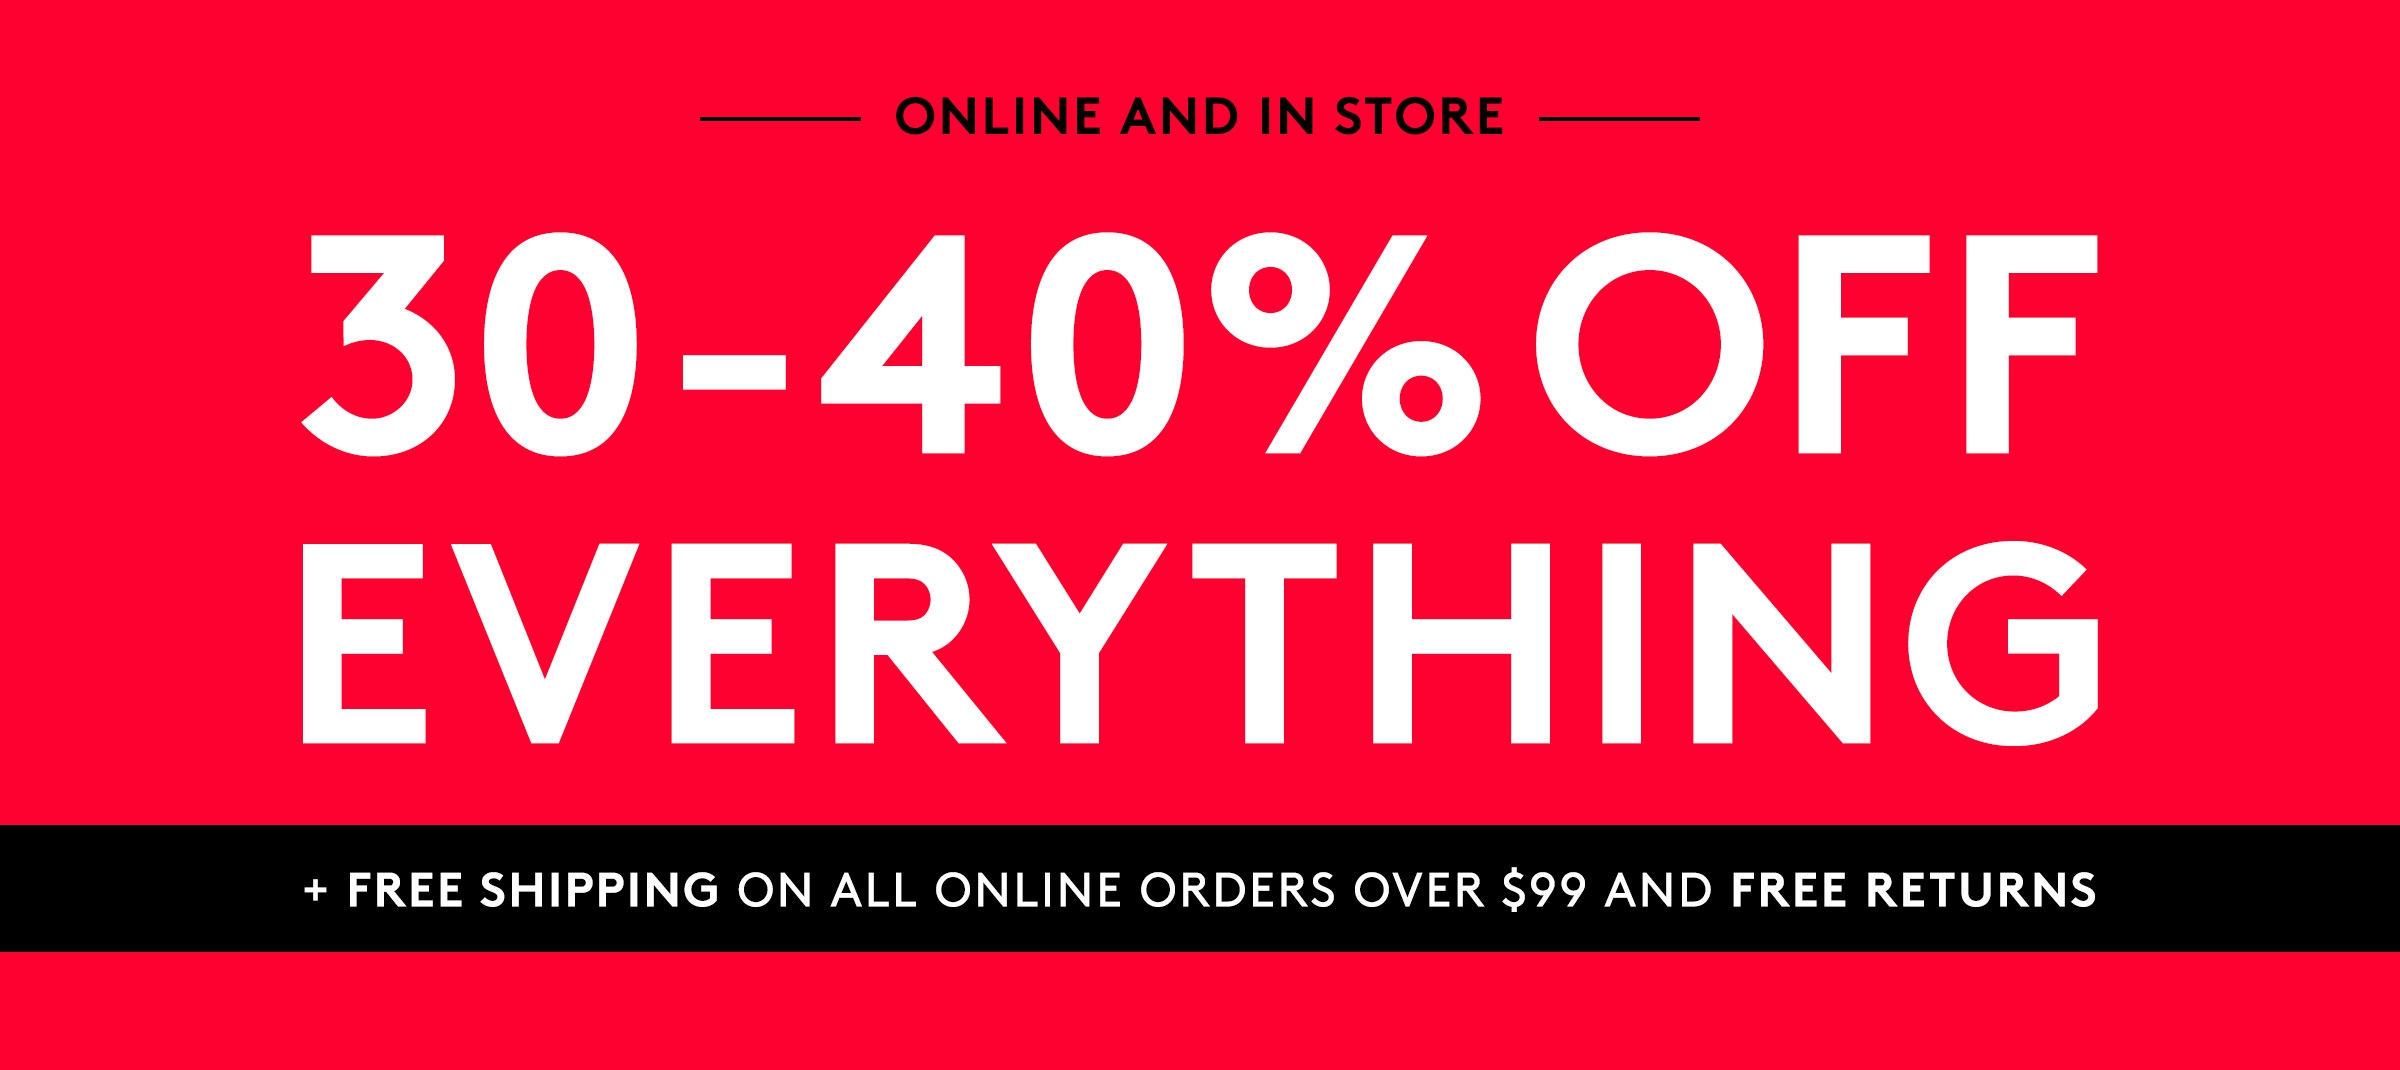 30-40% OFF EVERYTHING